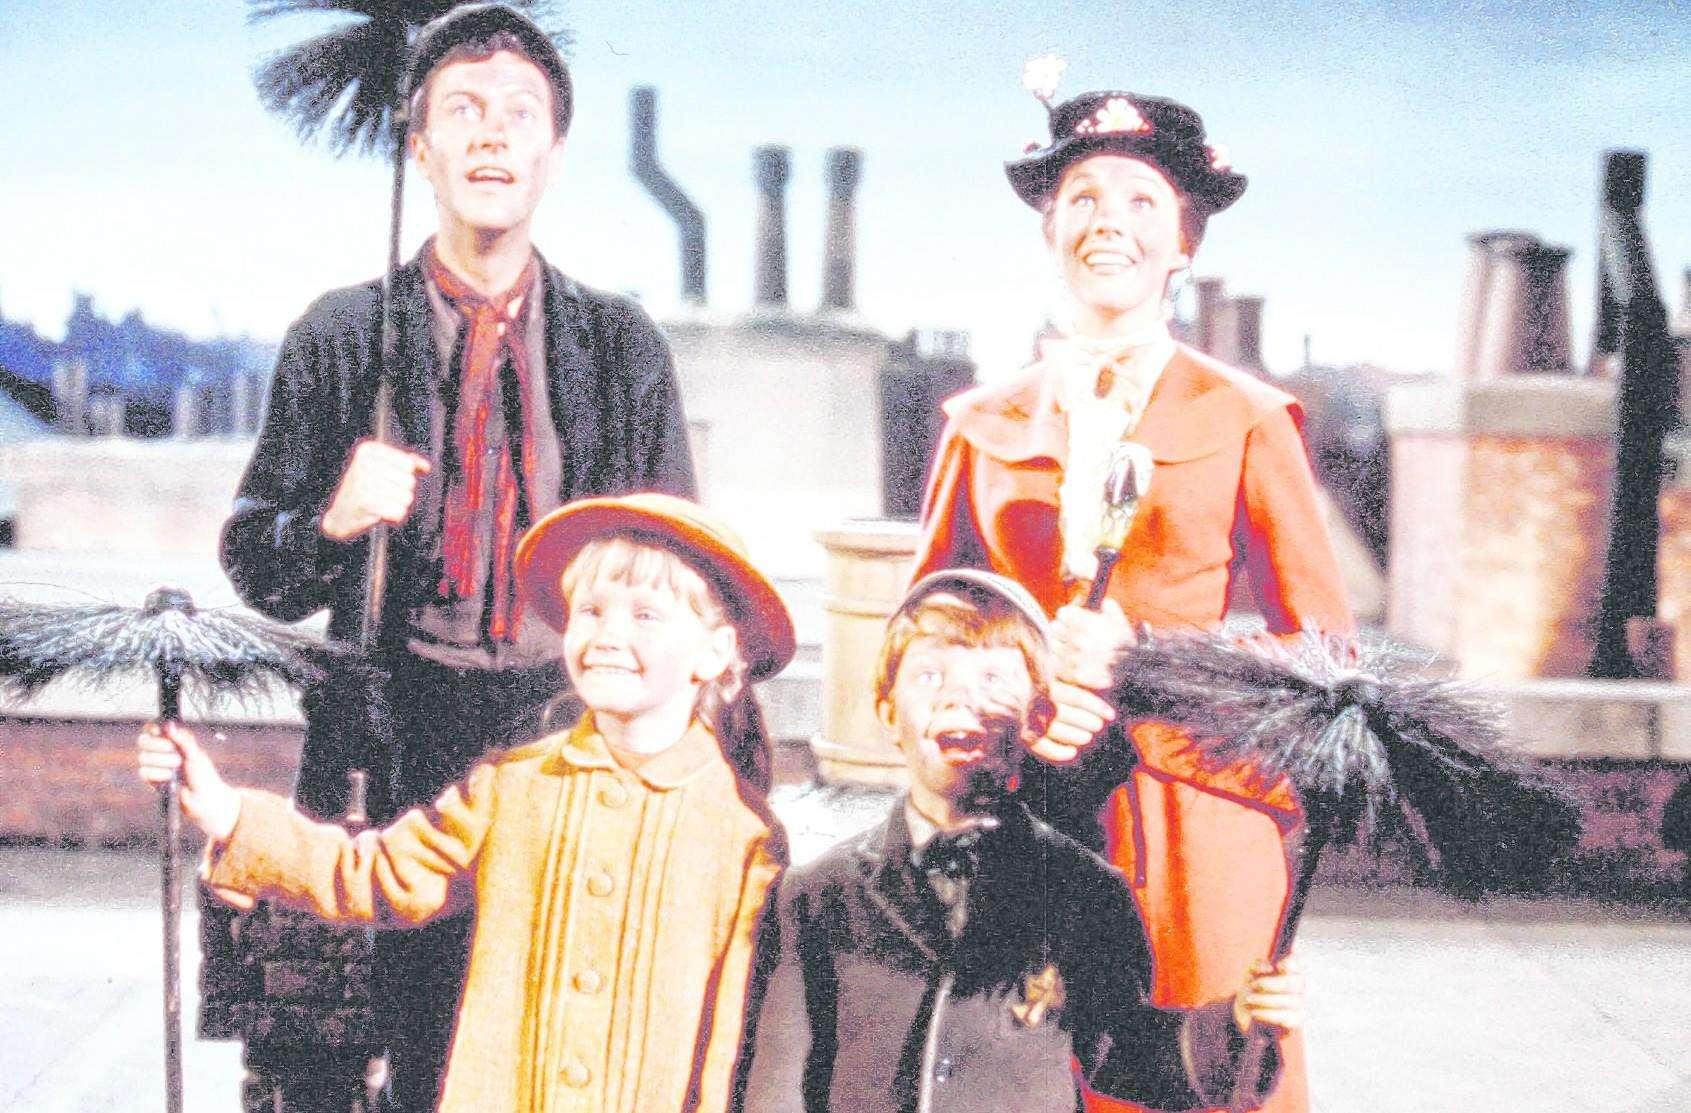 Catch the original Mary Poppins film on BBC One on Christmas Eve